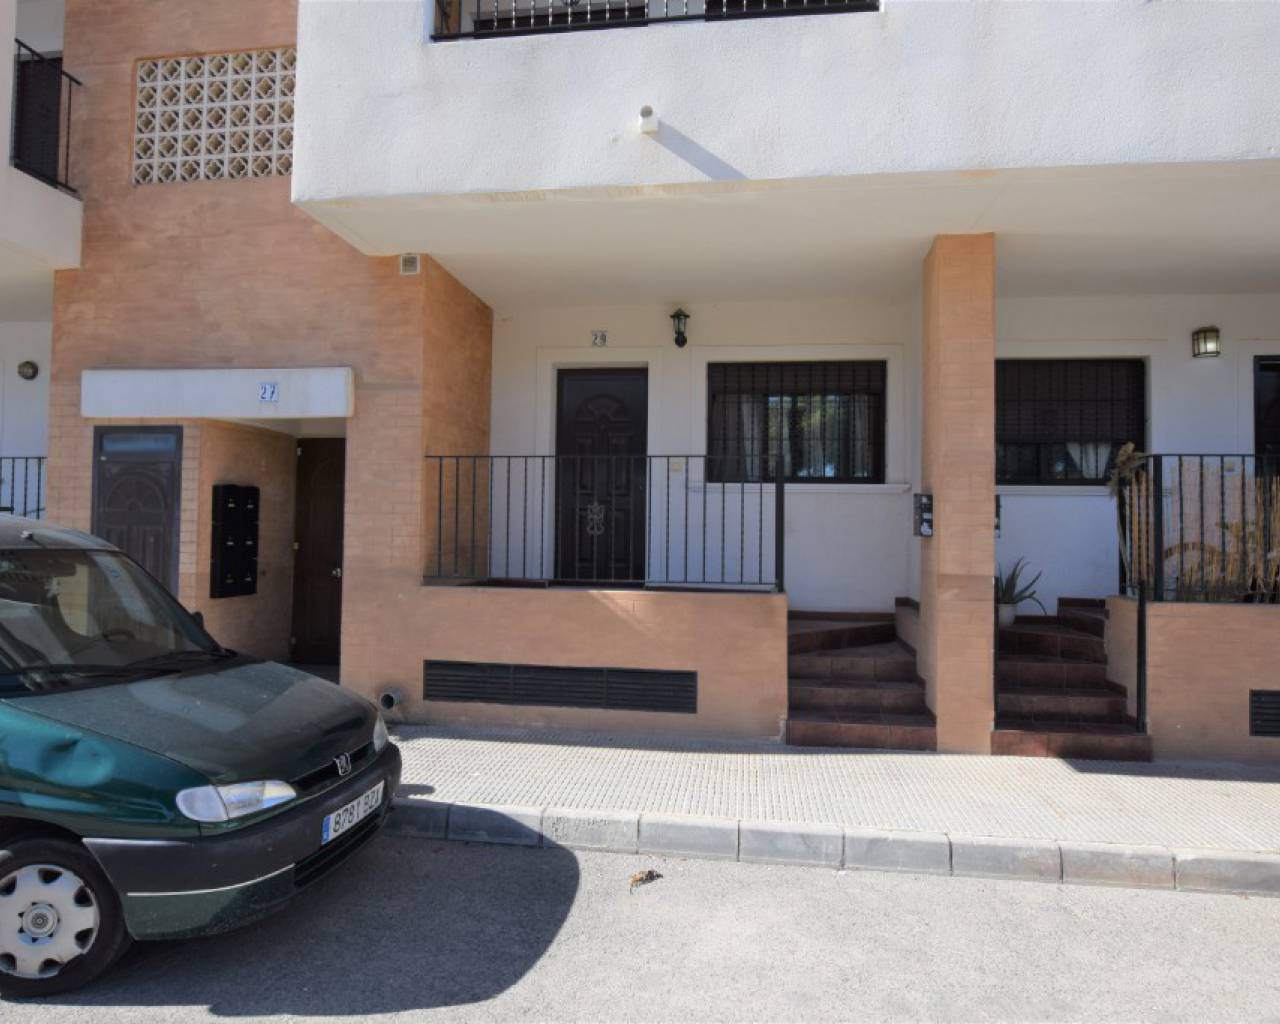 Apartment - Sale - Alicante - Formentera del Segura